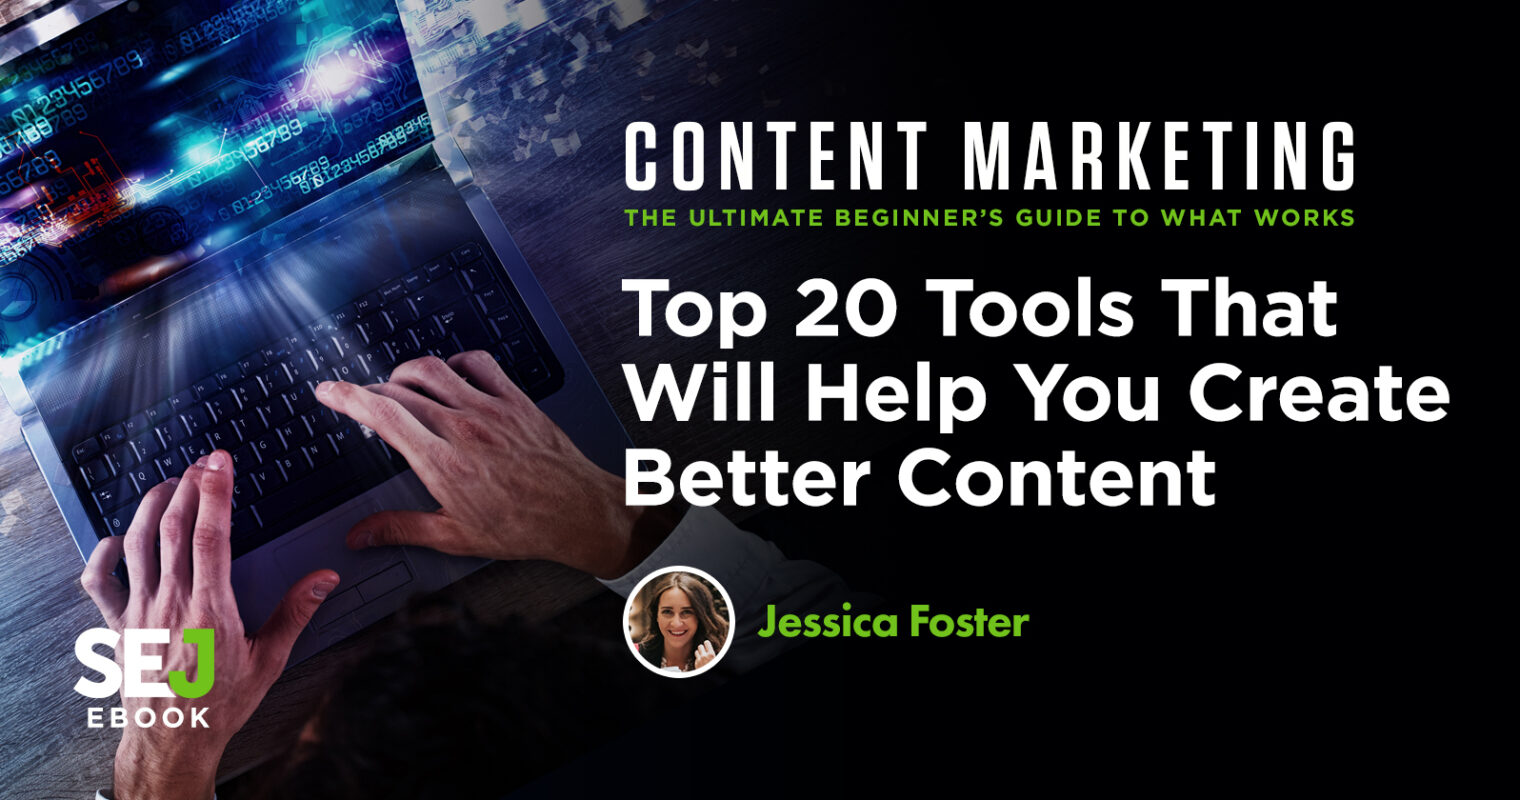 Top 20 Content Marketing Tools to Try Out